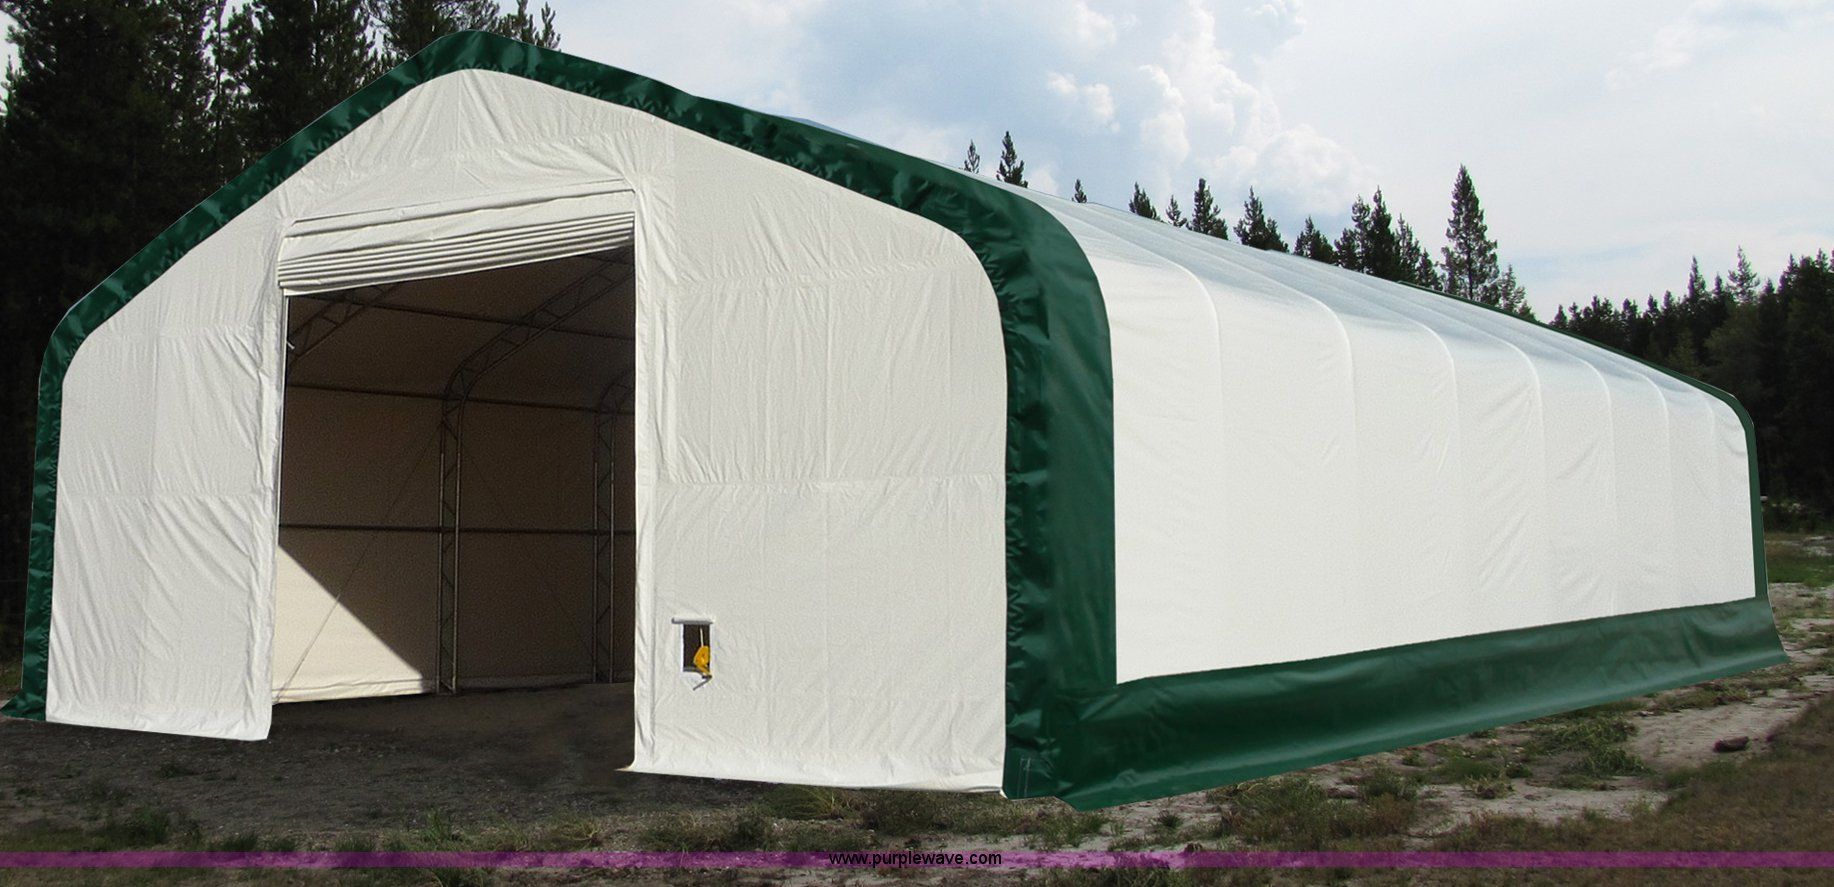 40' x 60' x 21' double truss storage building | Item F1527 |